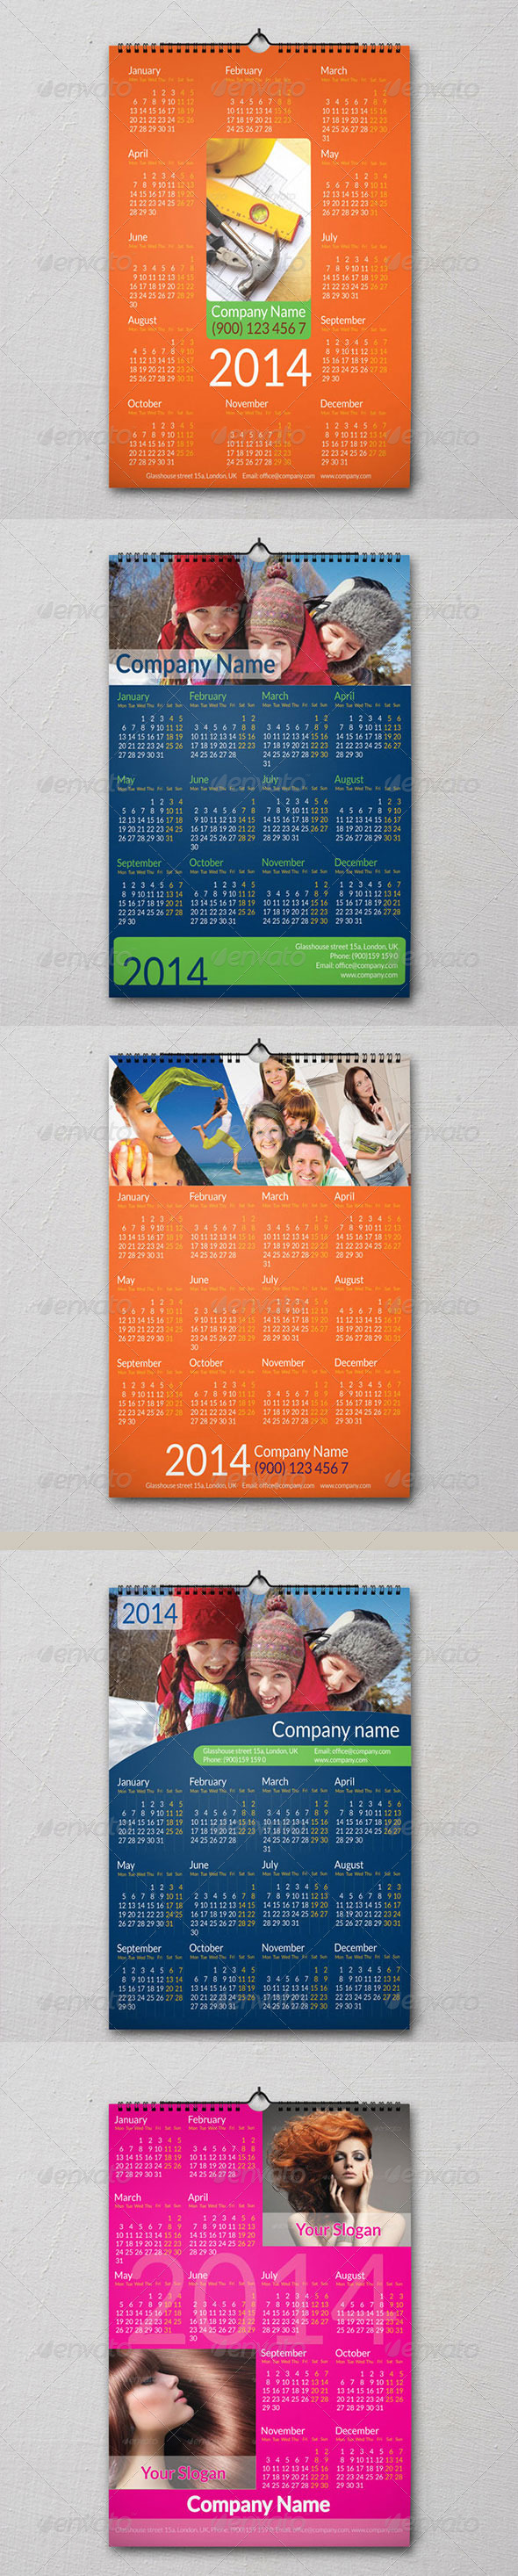 GraphicRiver 5 Calendars 6307859